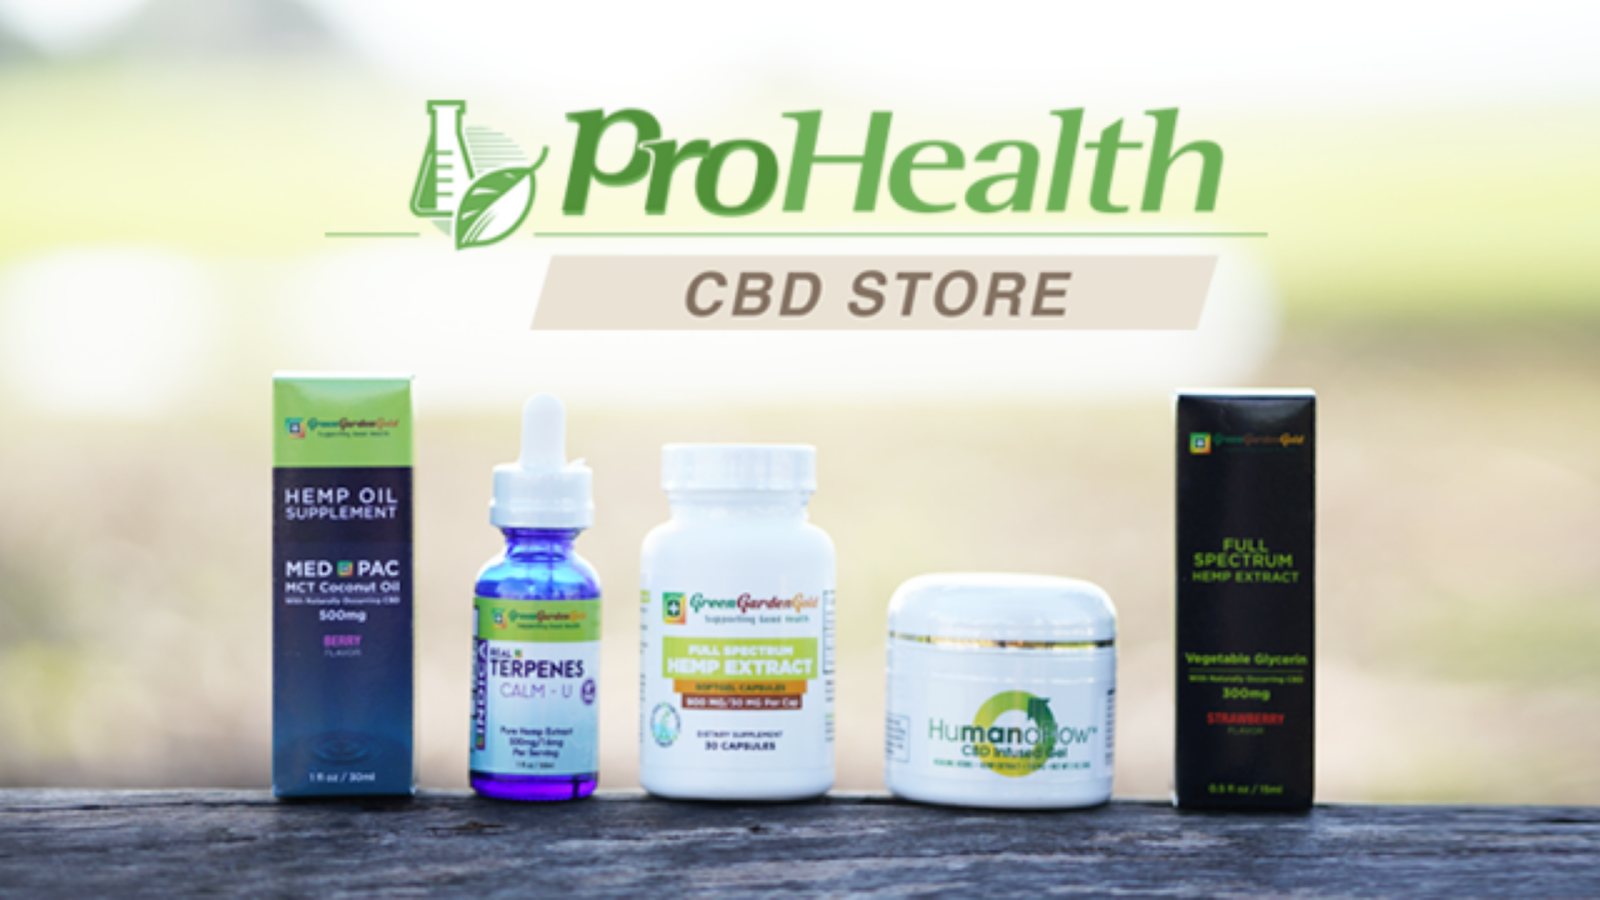 Top 3 CBD Products For Your Health